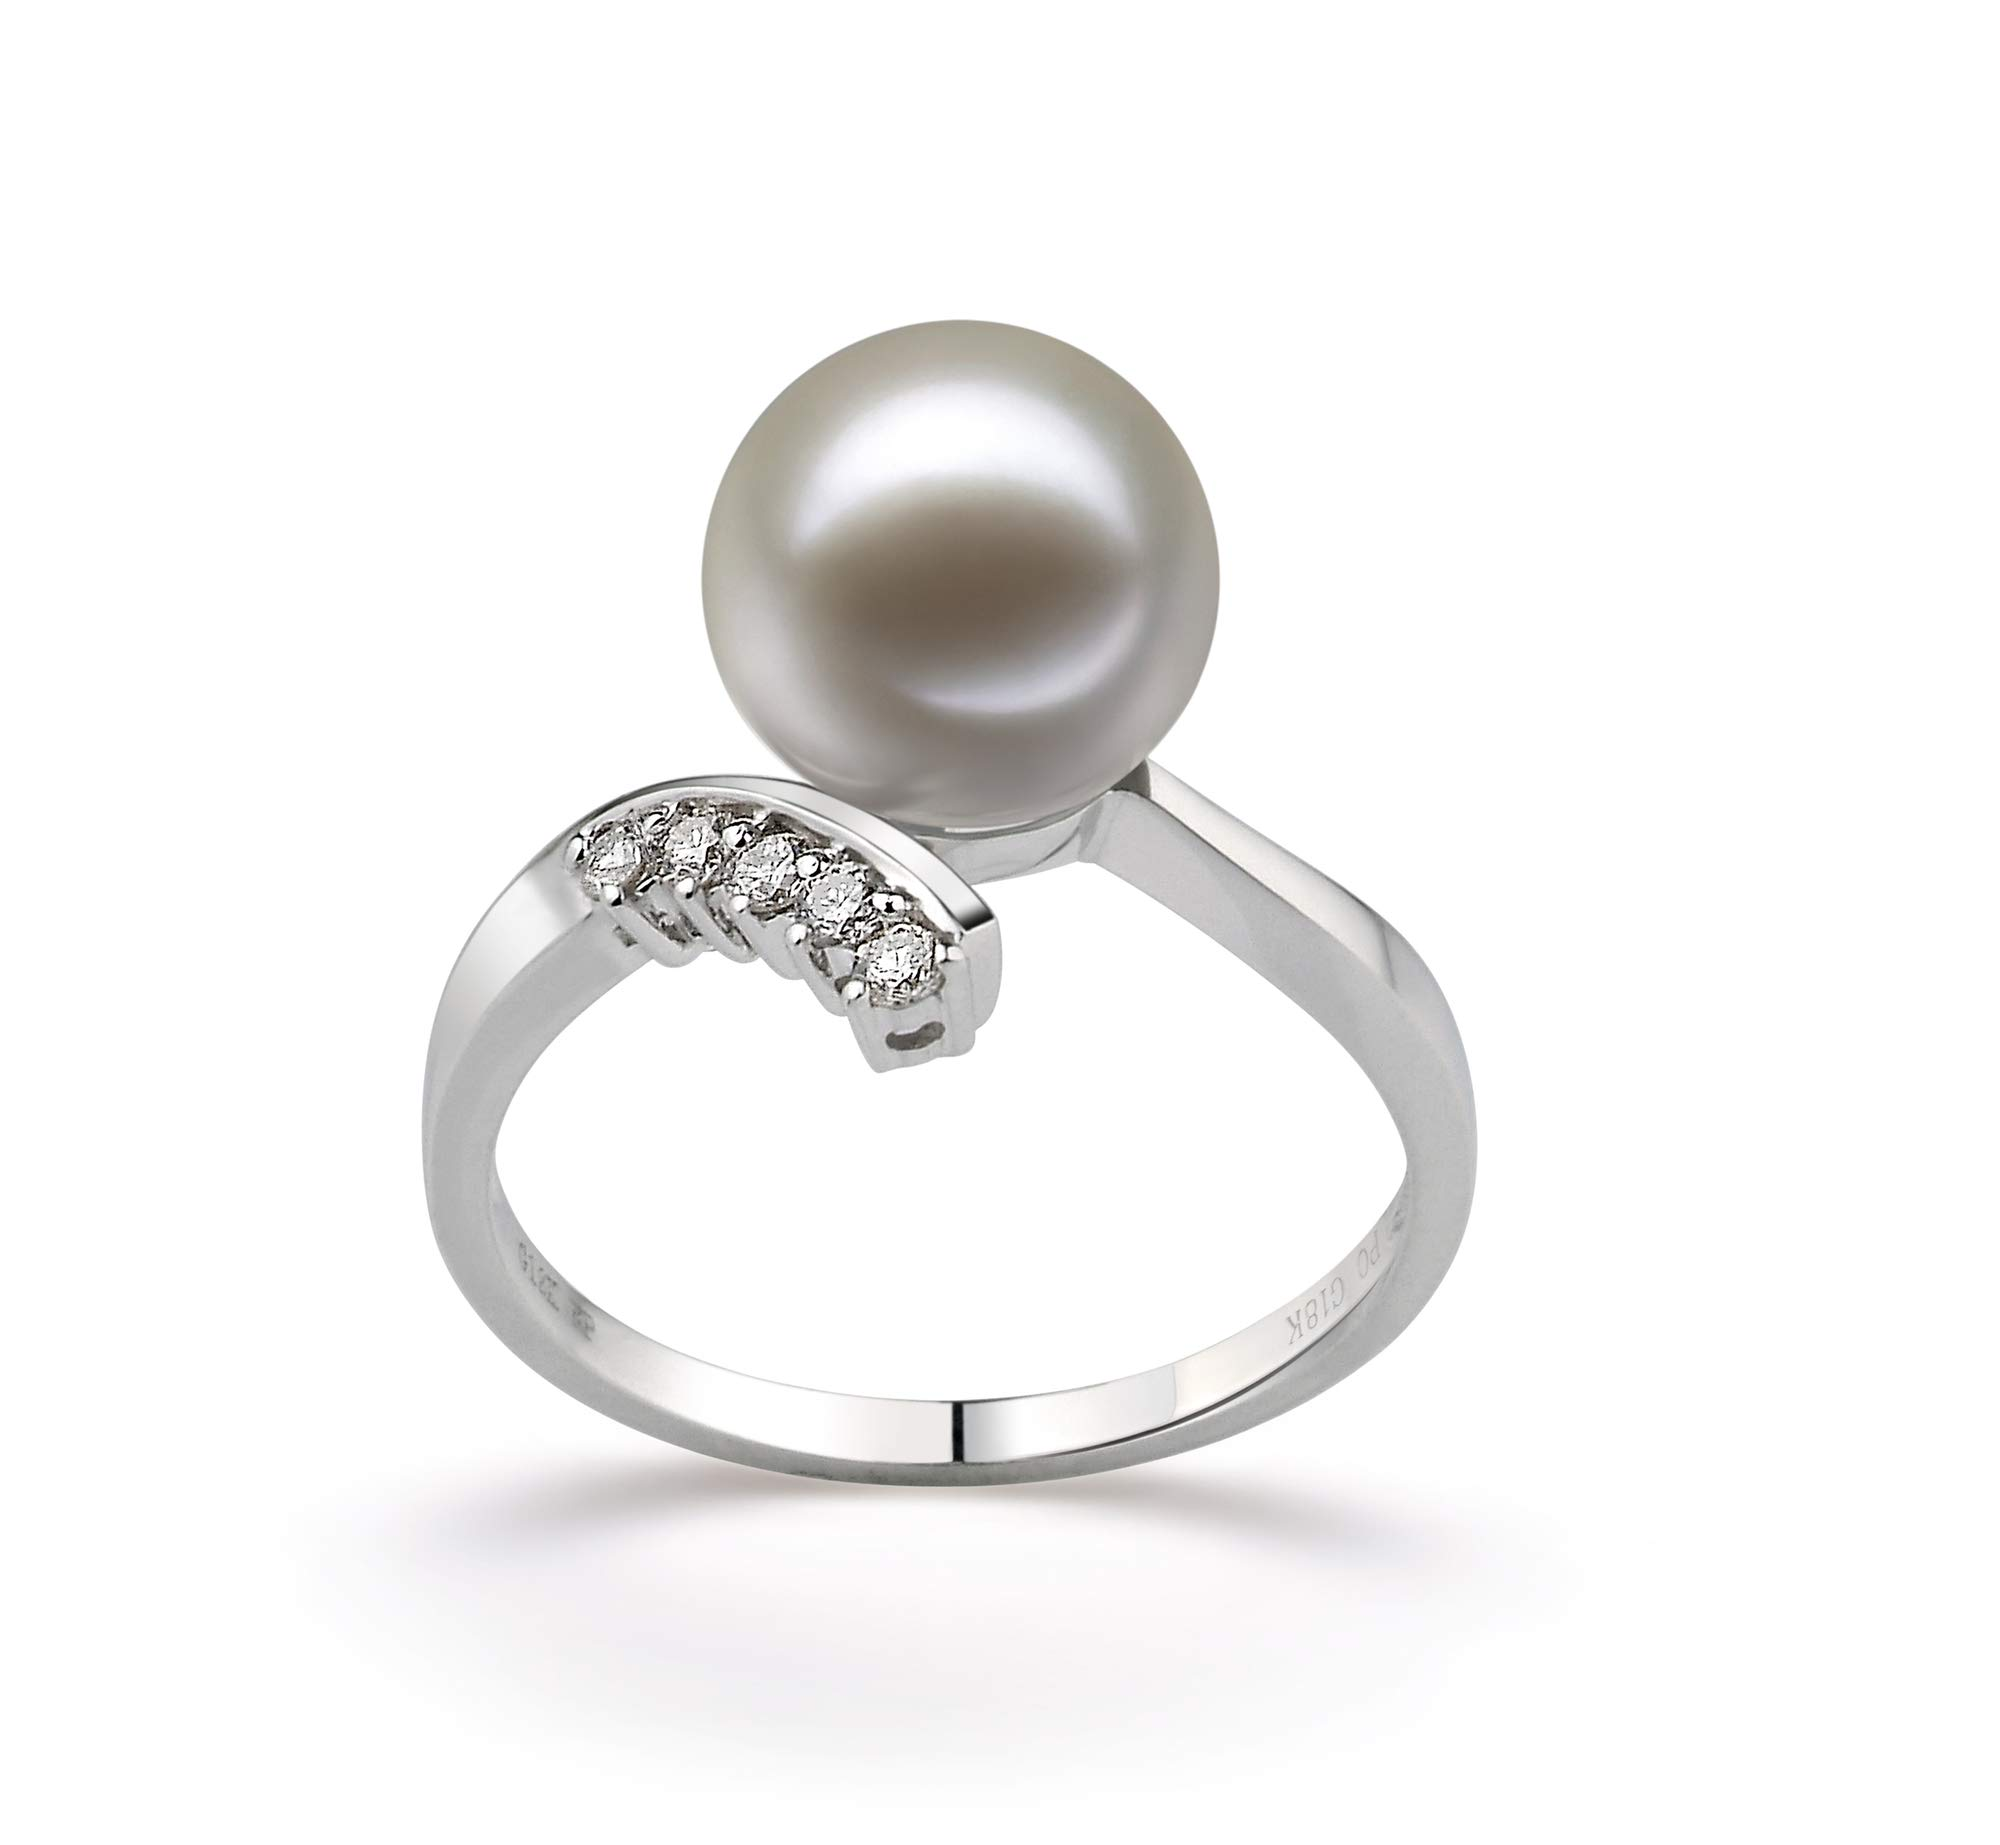 Grace White 9-10mm AAAA Quality Freshwater 14K White Gold Cultured Pearl Ring For Women - Size-7